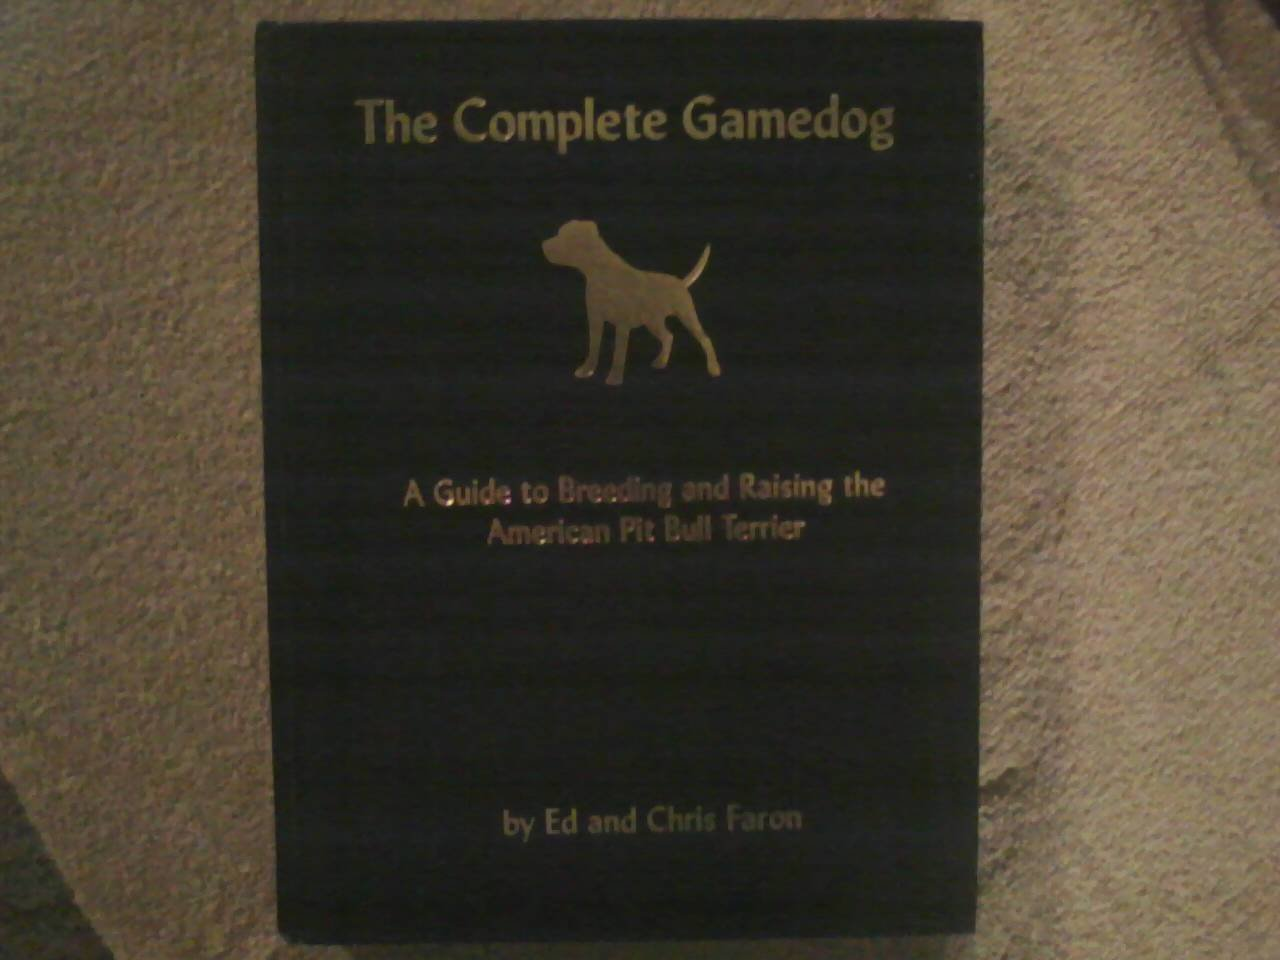 The Complete Gamedog: A Guide to Breeding and Raising the American